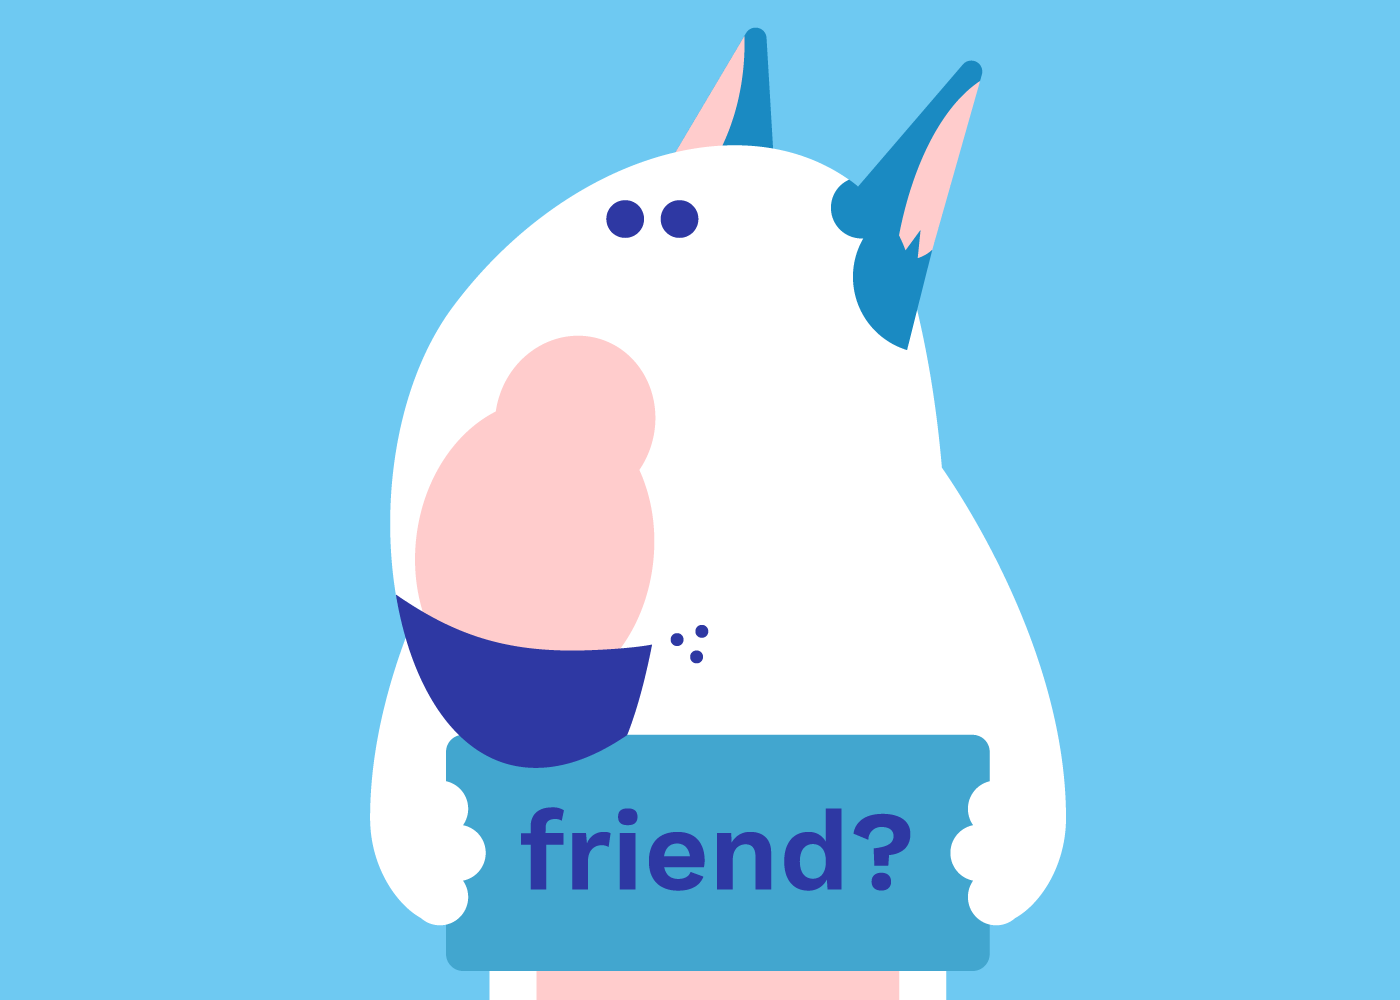 """An illustration of a dog holding a sign that says, """"Friend?"""""""